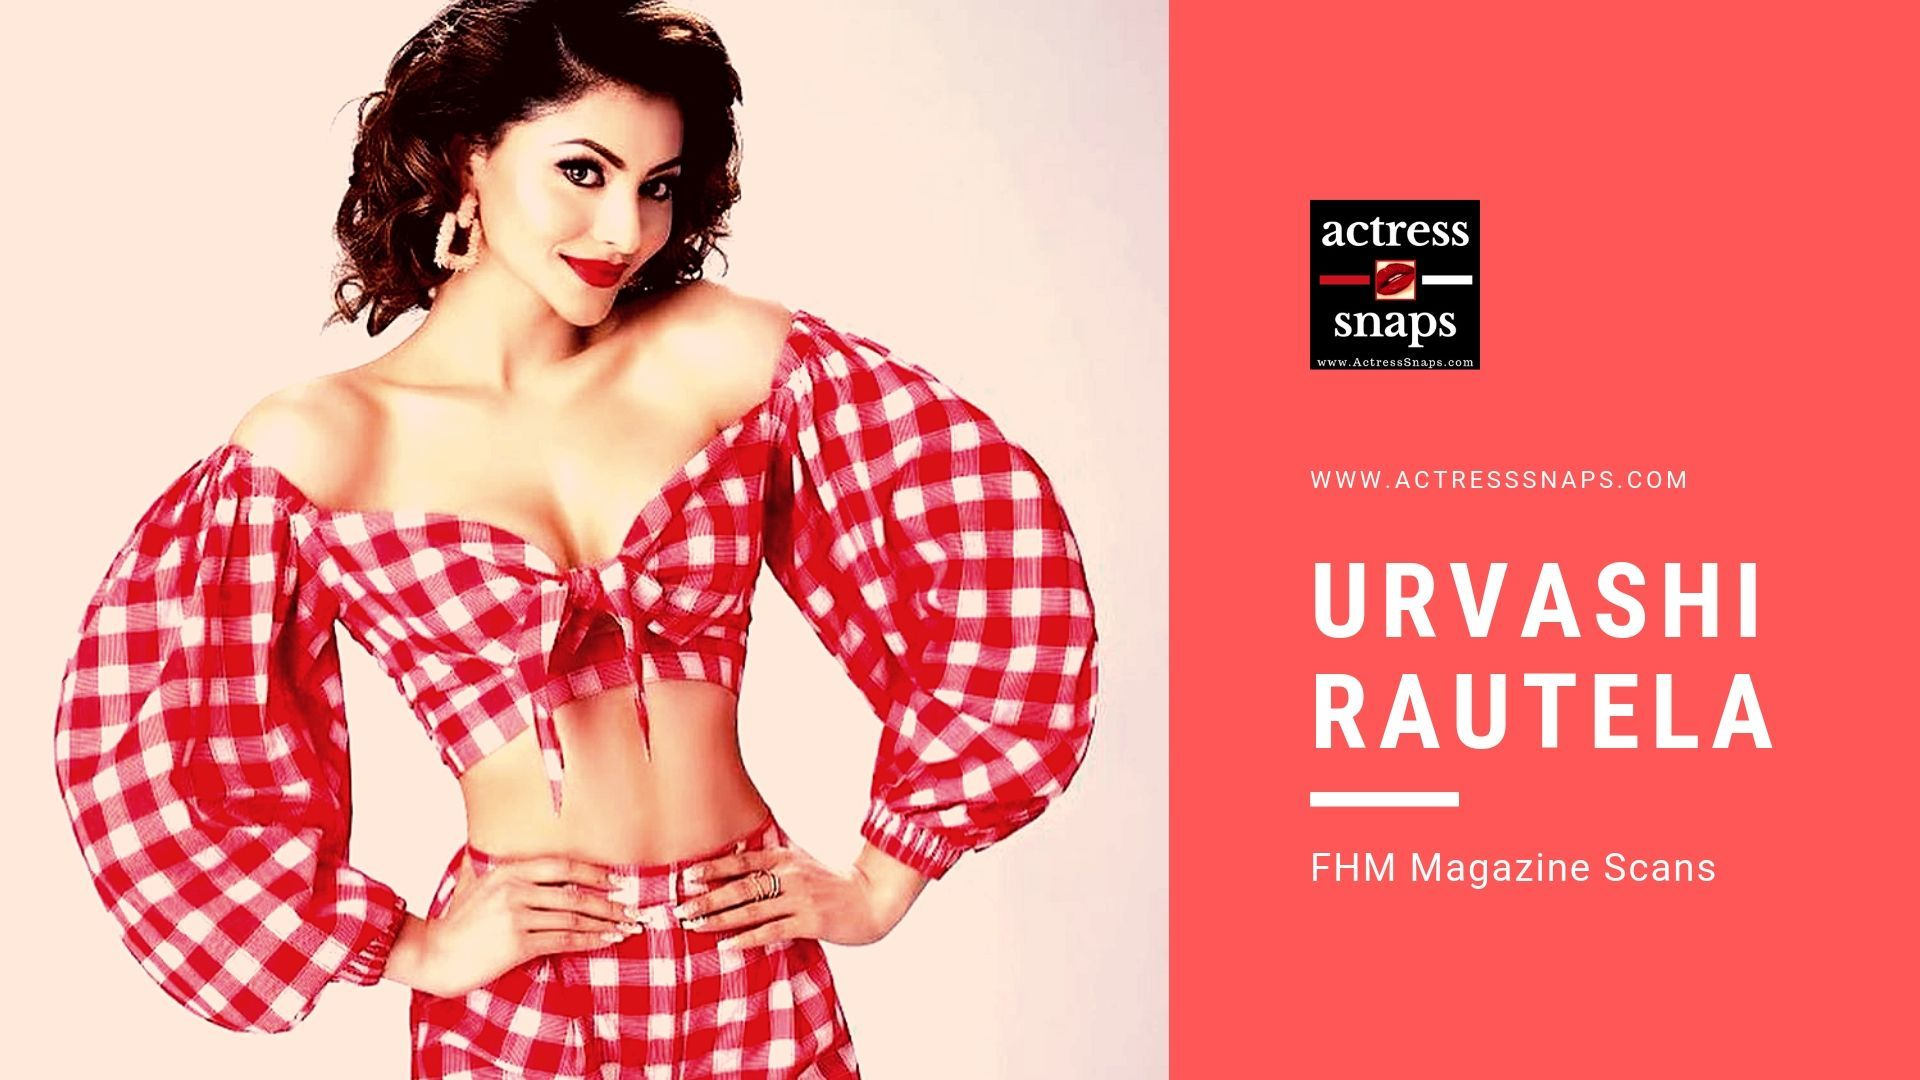 Urvashi Rautela - FHM Magazine Photos - Sexy Actress Pictures | Hot Actress Pictures - ActressSnaps.com